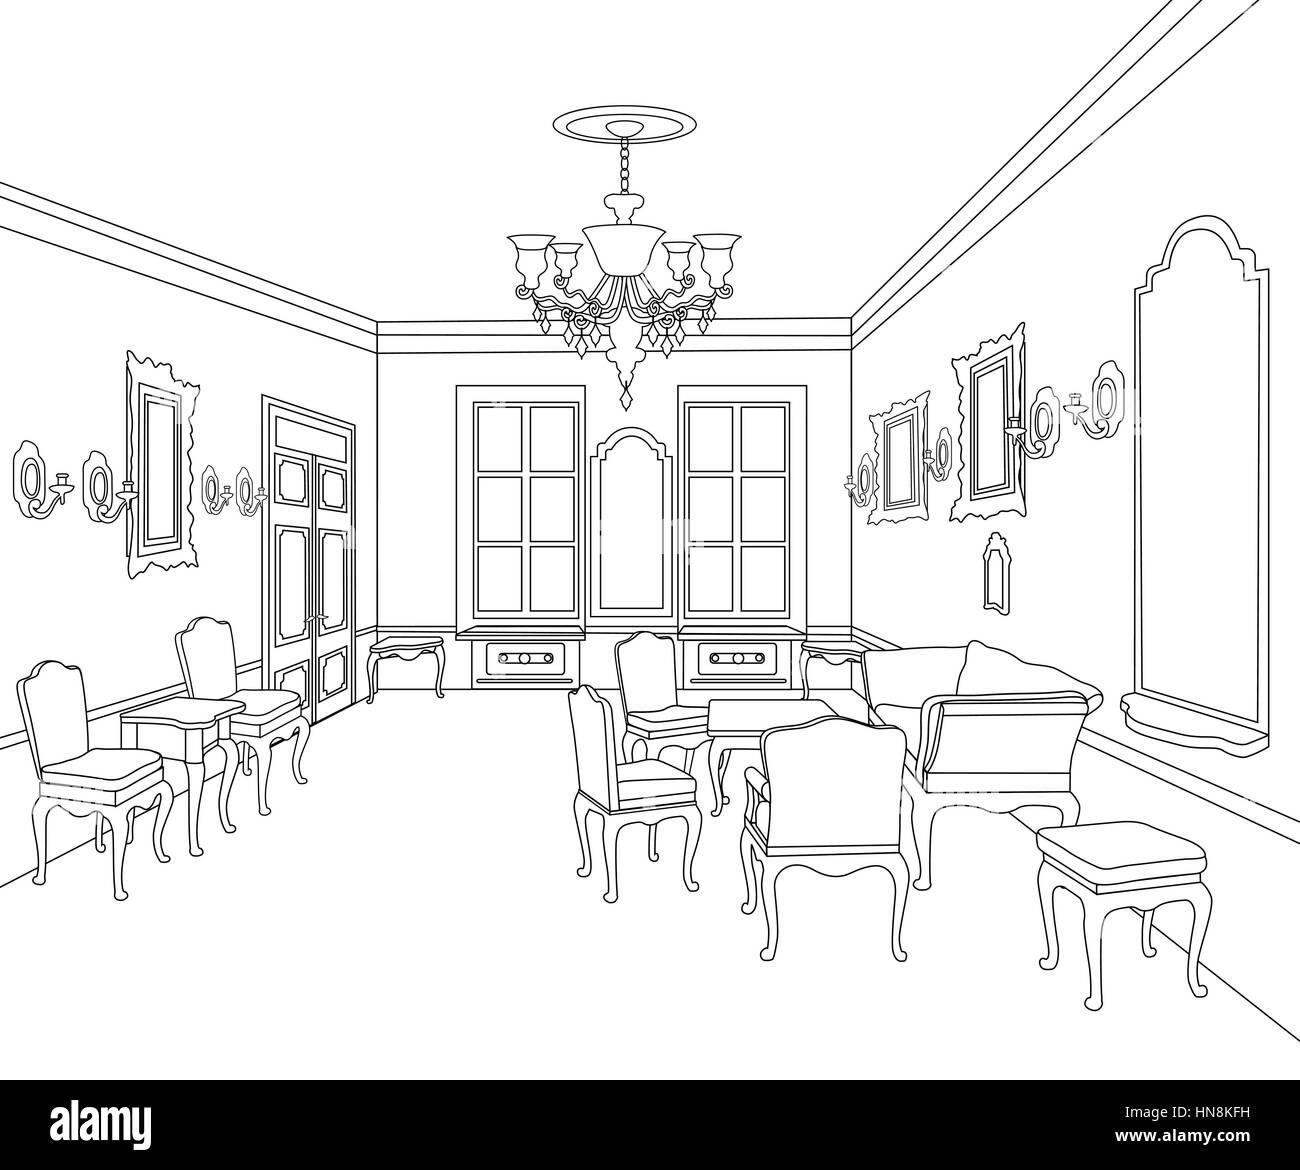 Interior outline sketch Furniture blueprint Architectural design